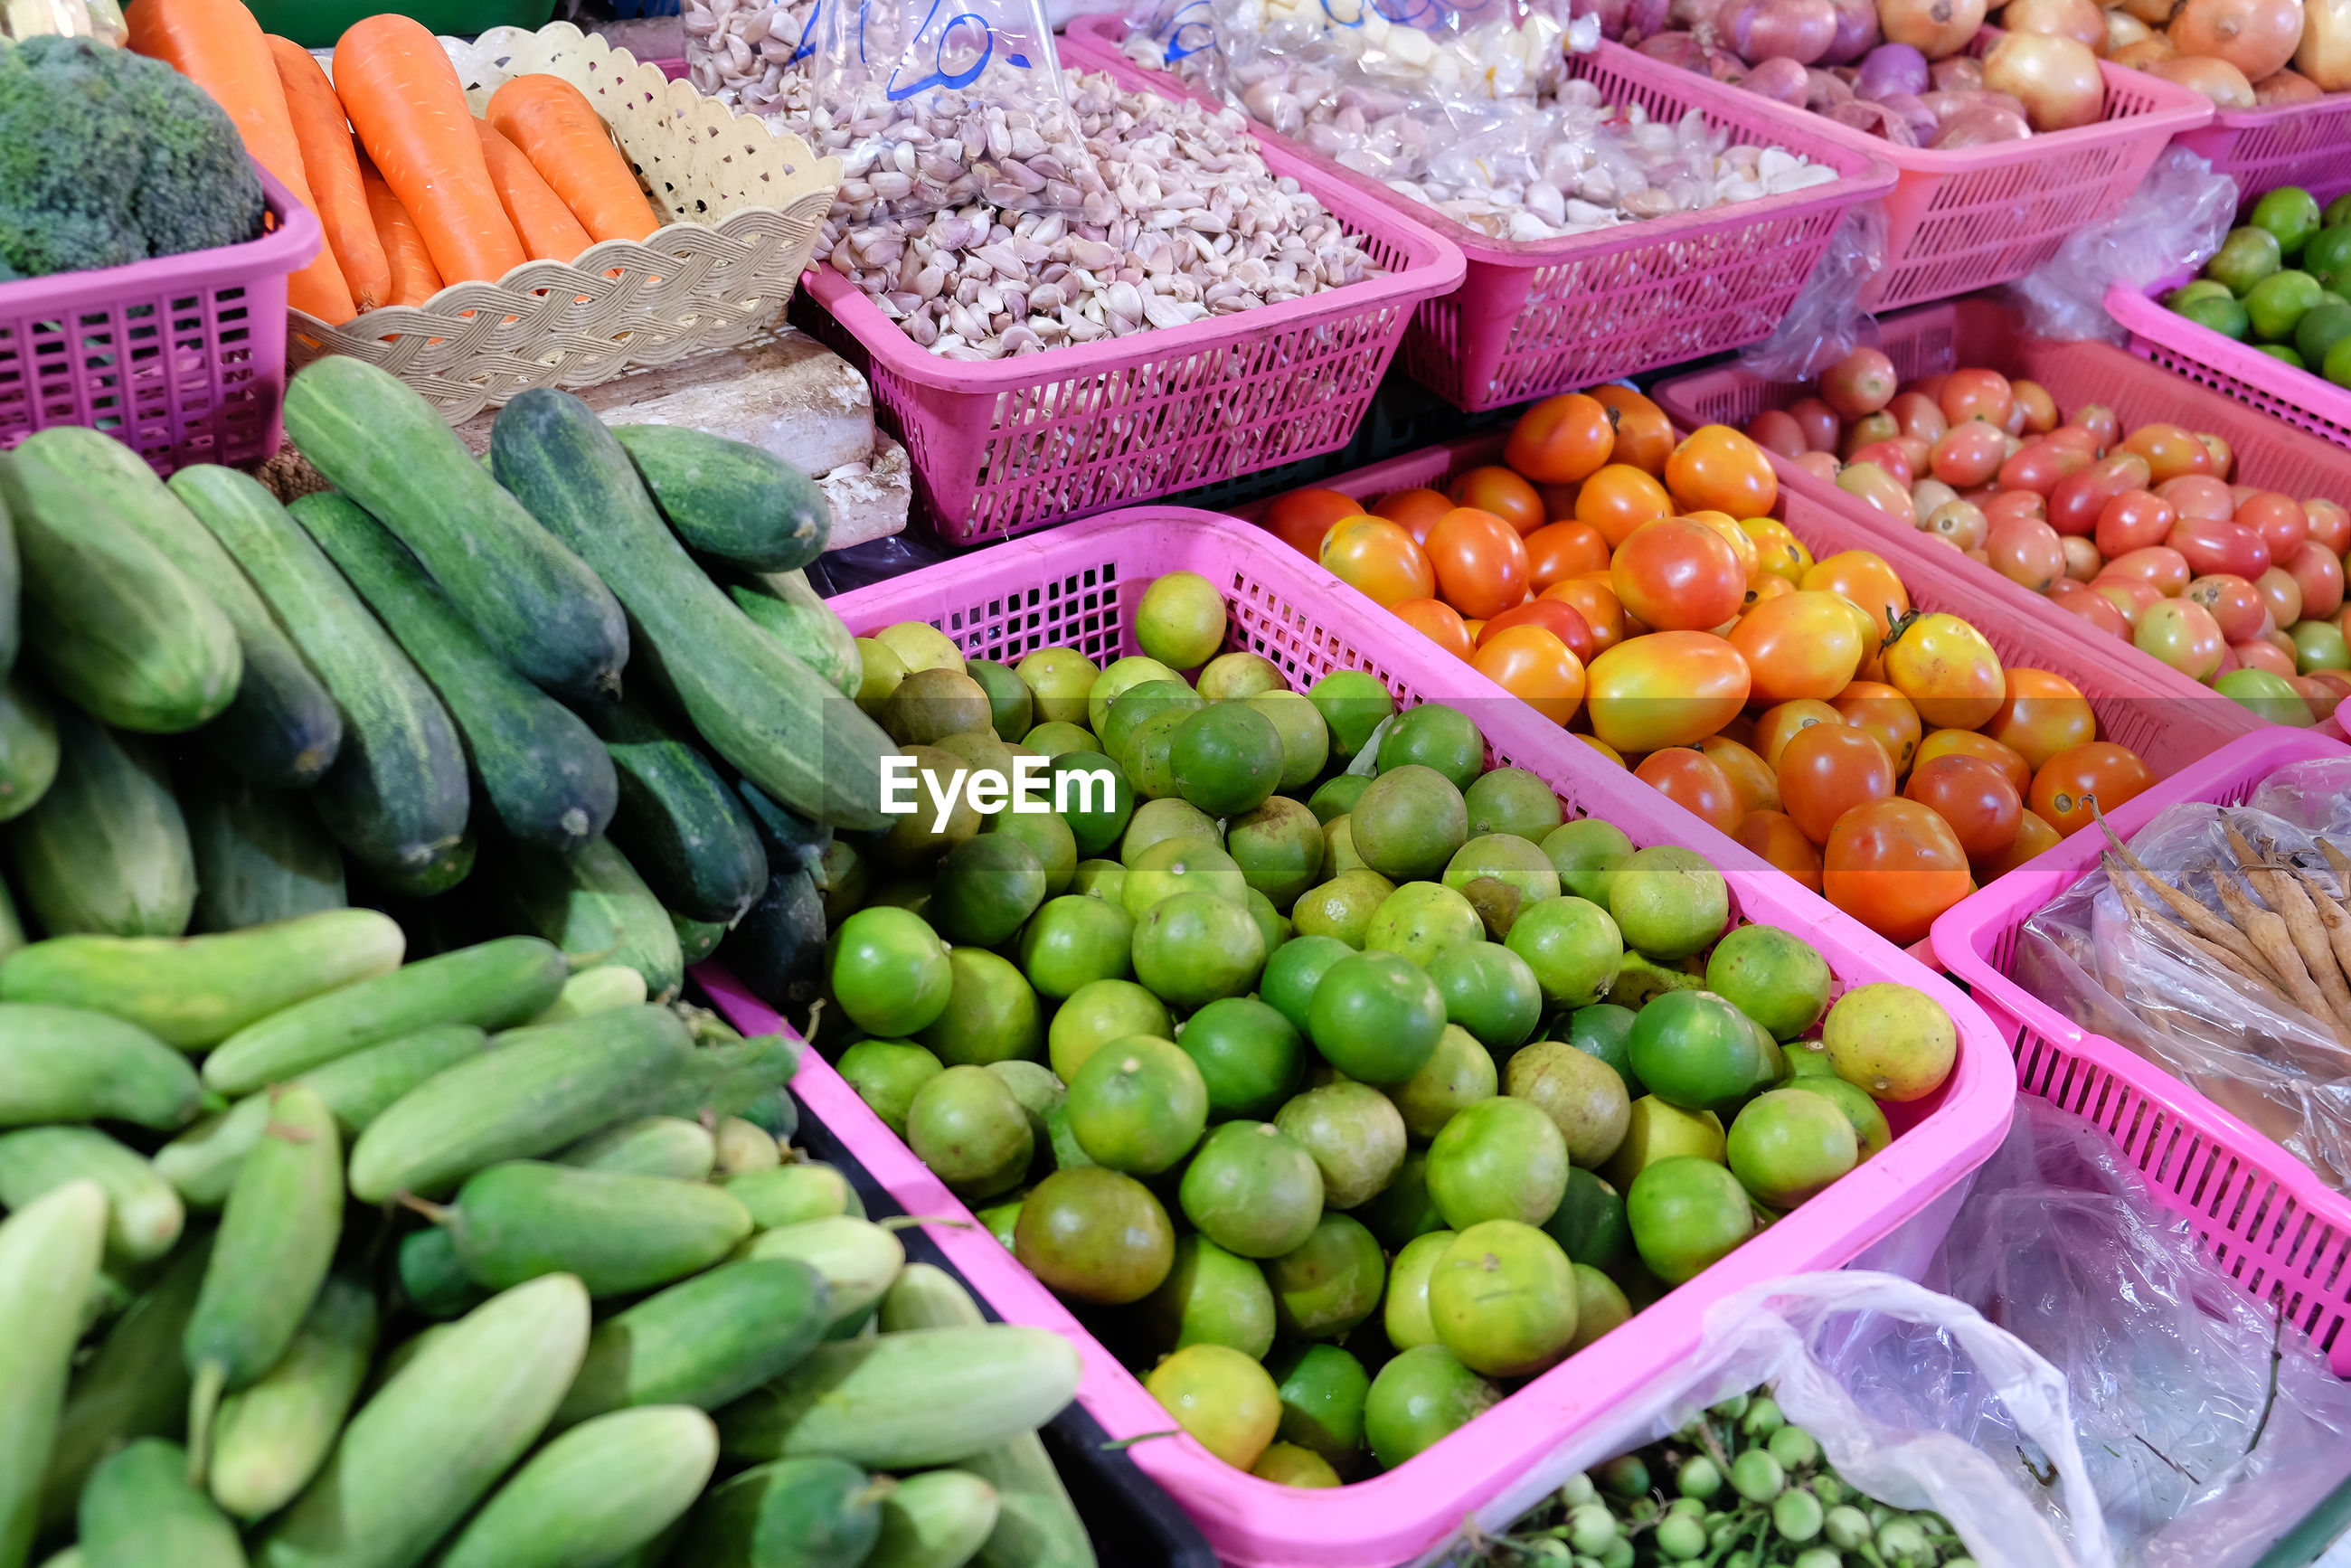 HIGH ANGLE VIEW OF VEGETABLES FOR SALE AT MARKET STALL